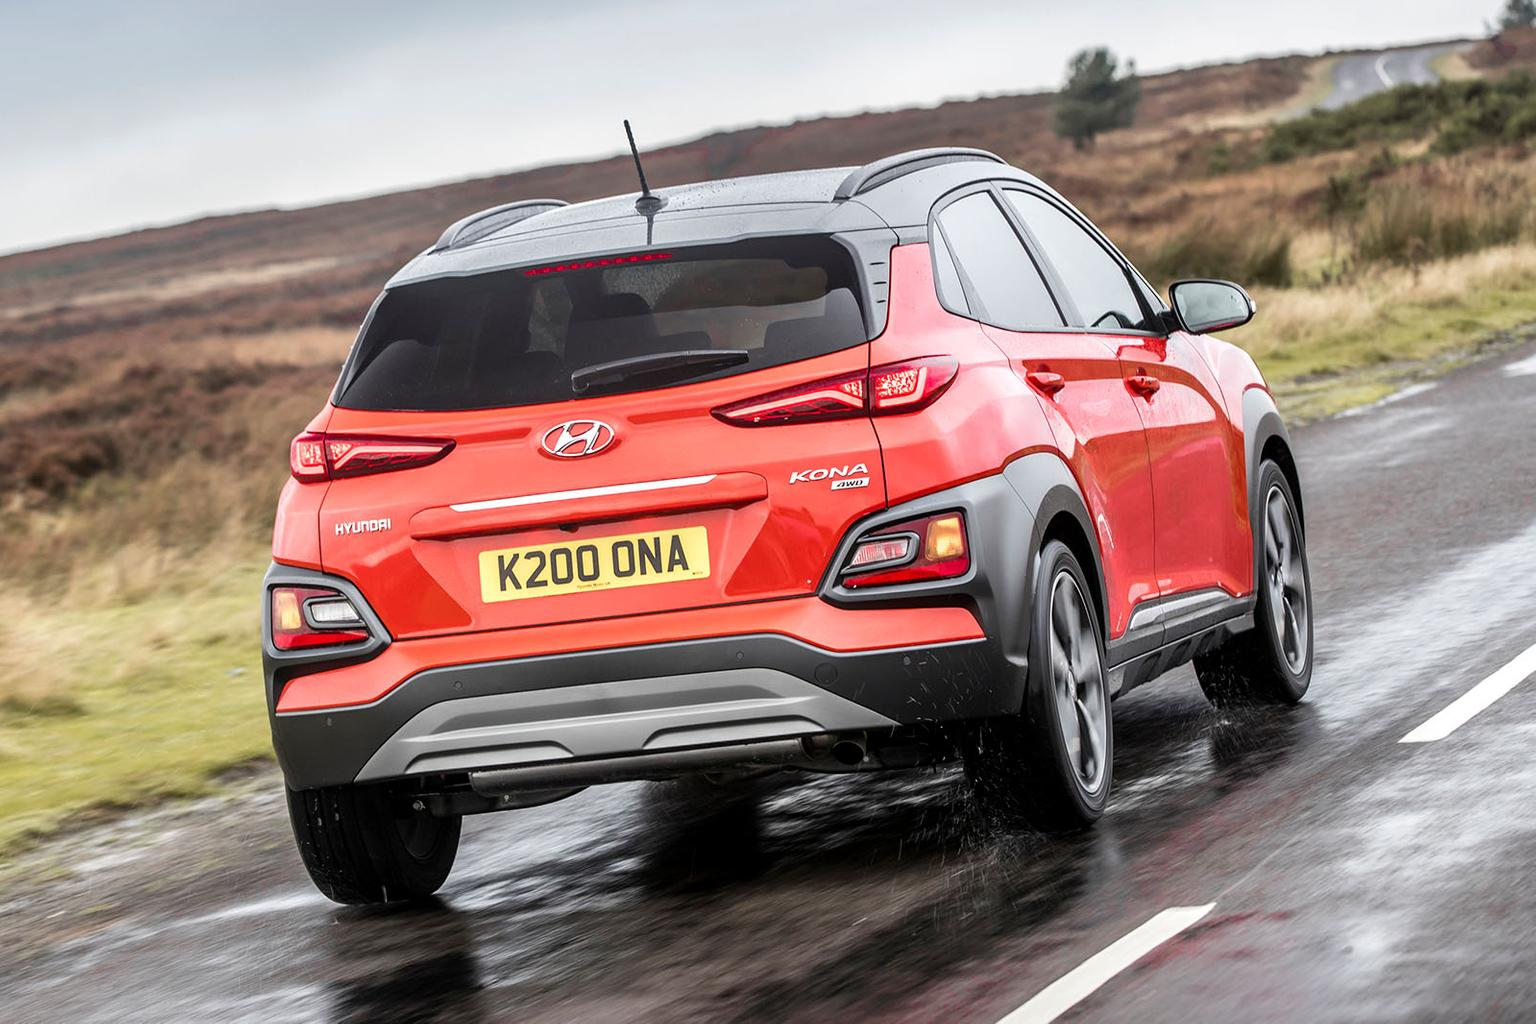 2017 Hyundai Kona UK review – price, specs and release date